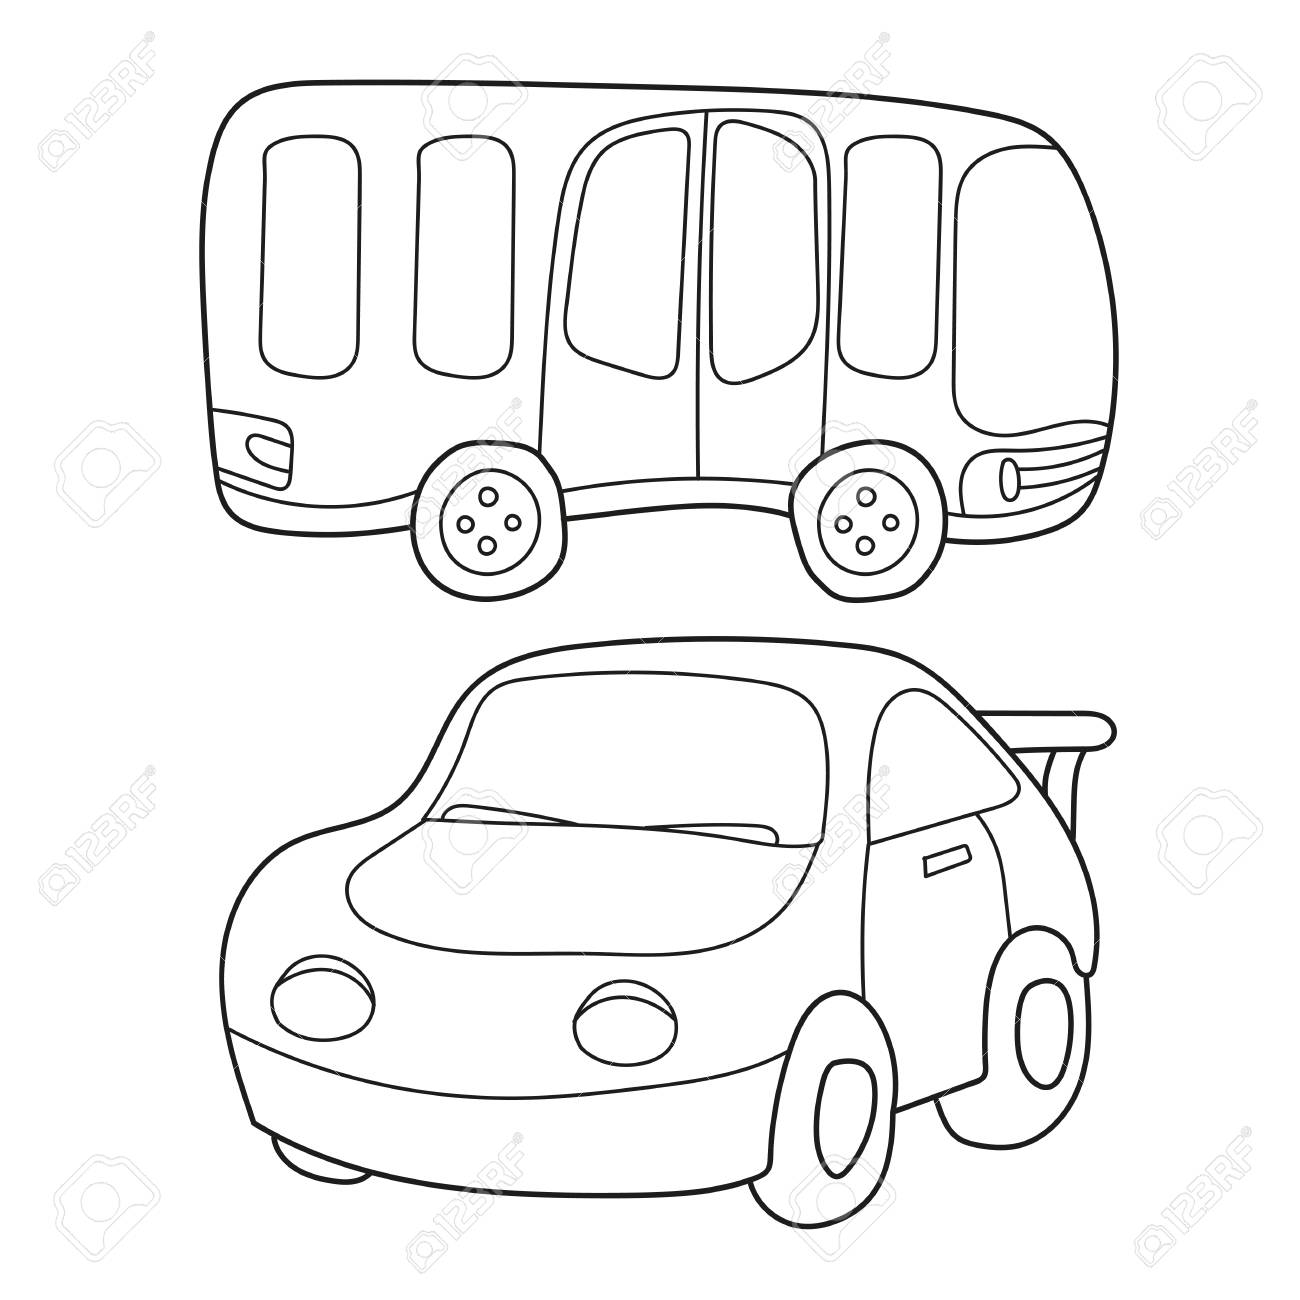 Contour black and white cartoon of bus and car. Coloring book..